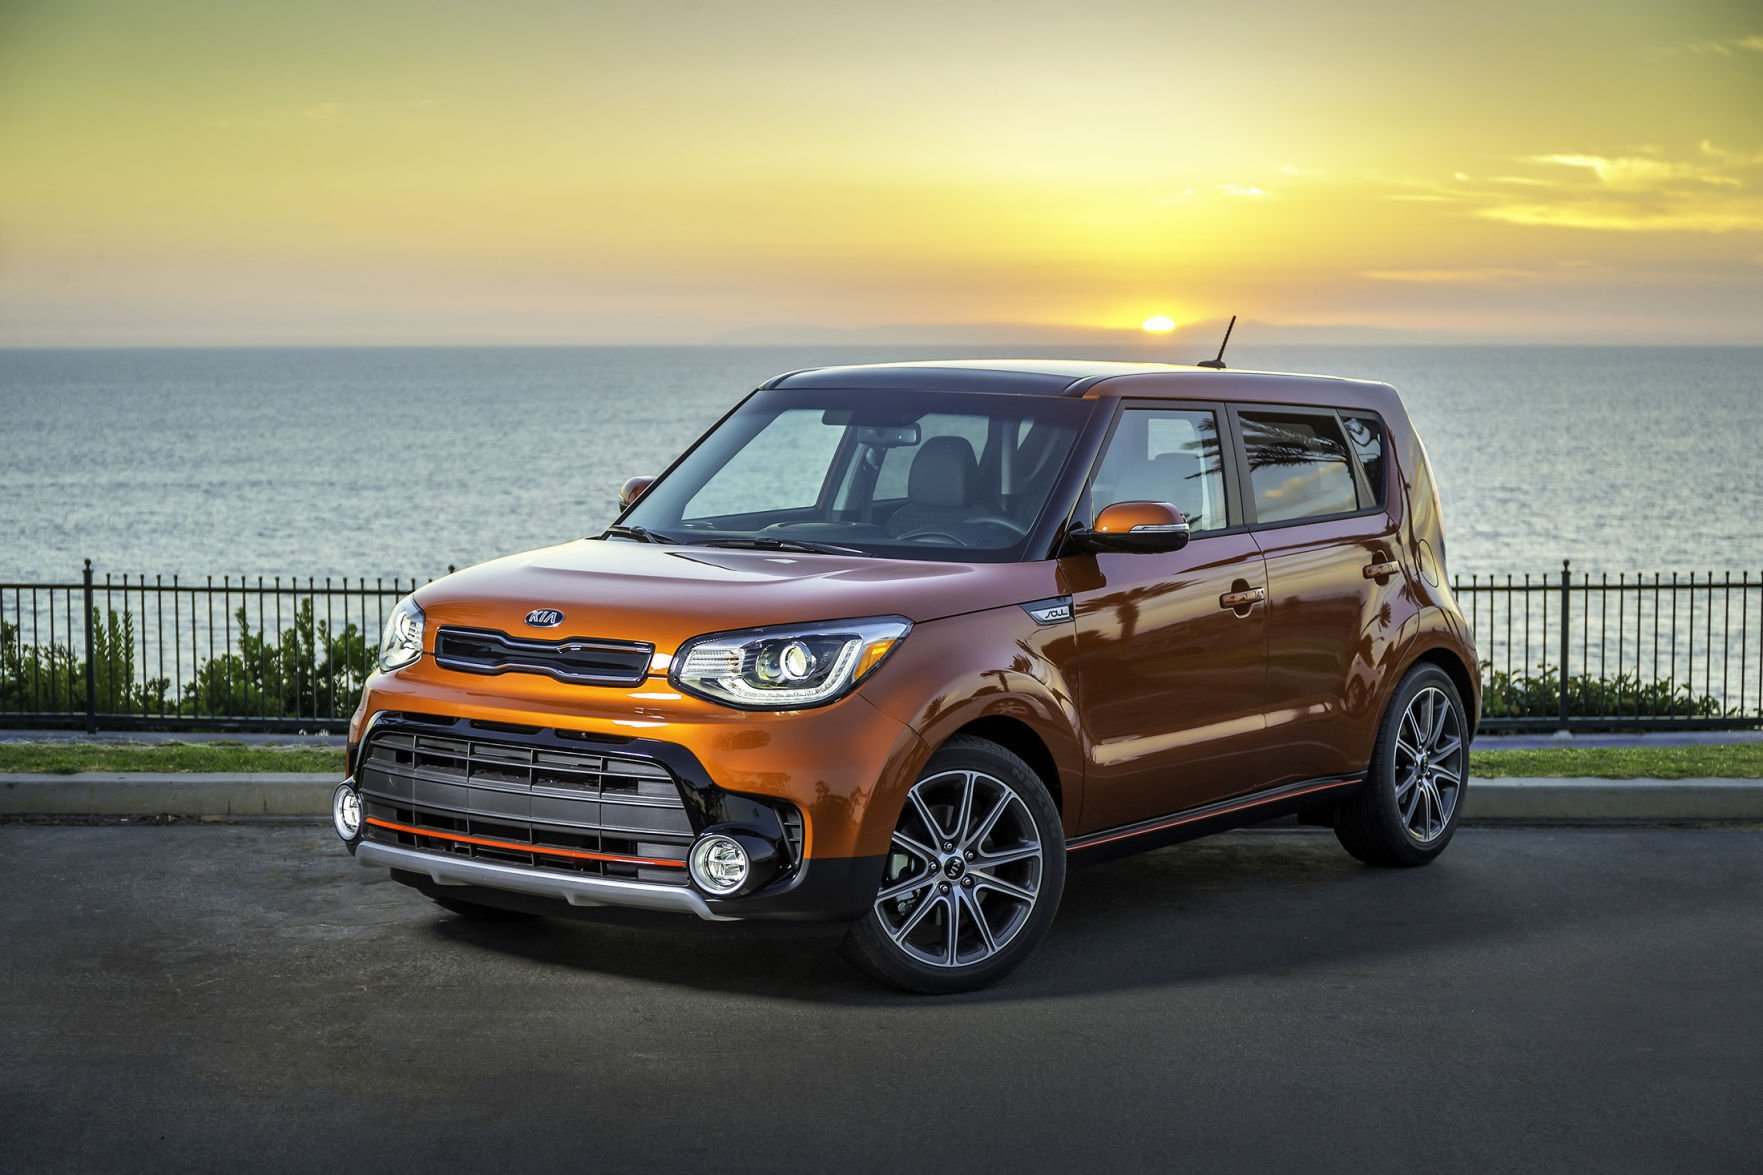 The Kia Soul Makes A 201 Horsepower, Turbocharged Engine Available This  Year. Interestingly, The Most Powerful Engine In The Lineup Is Also The  Most Fuel ...